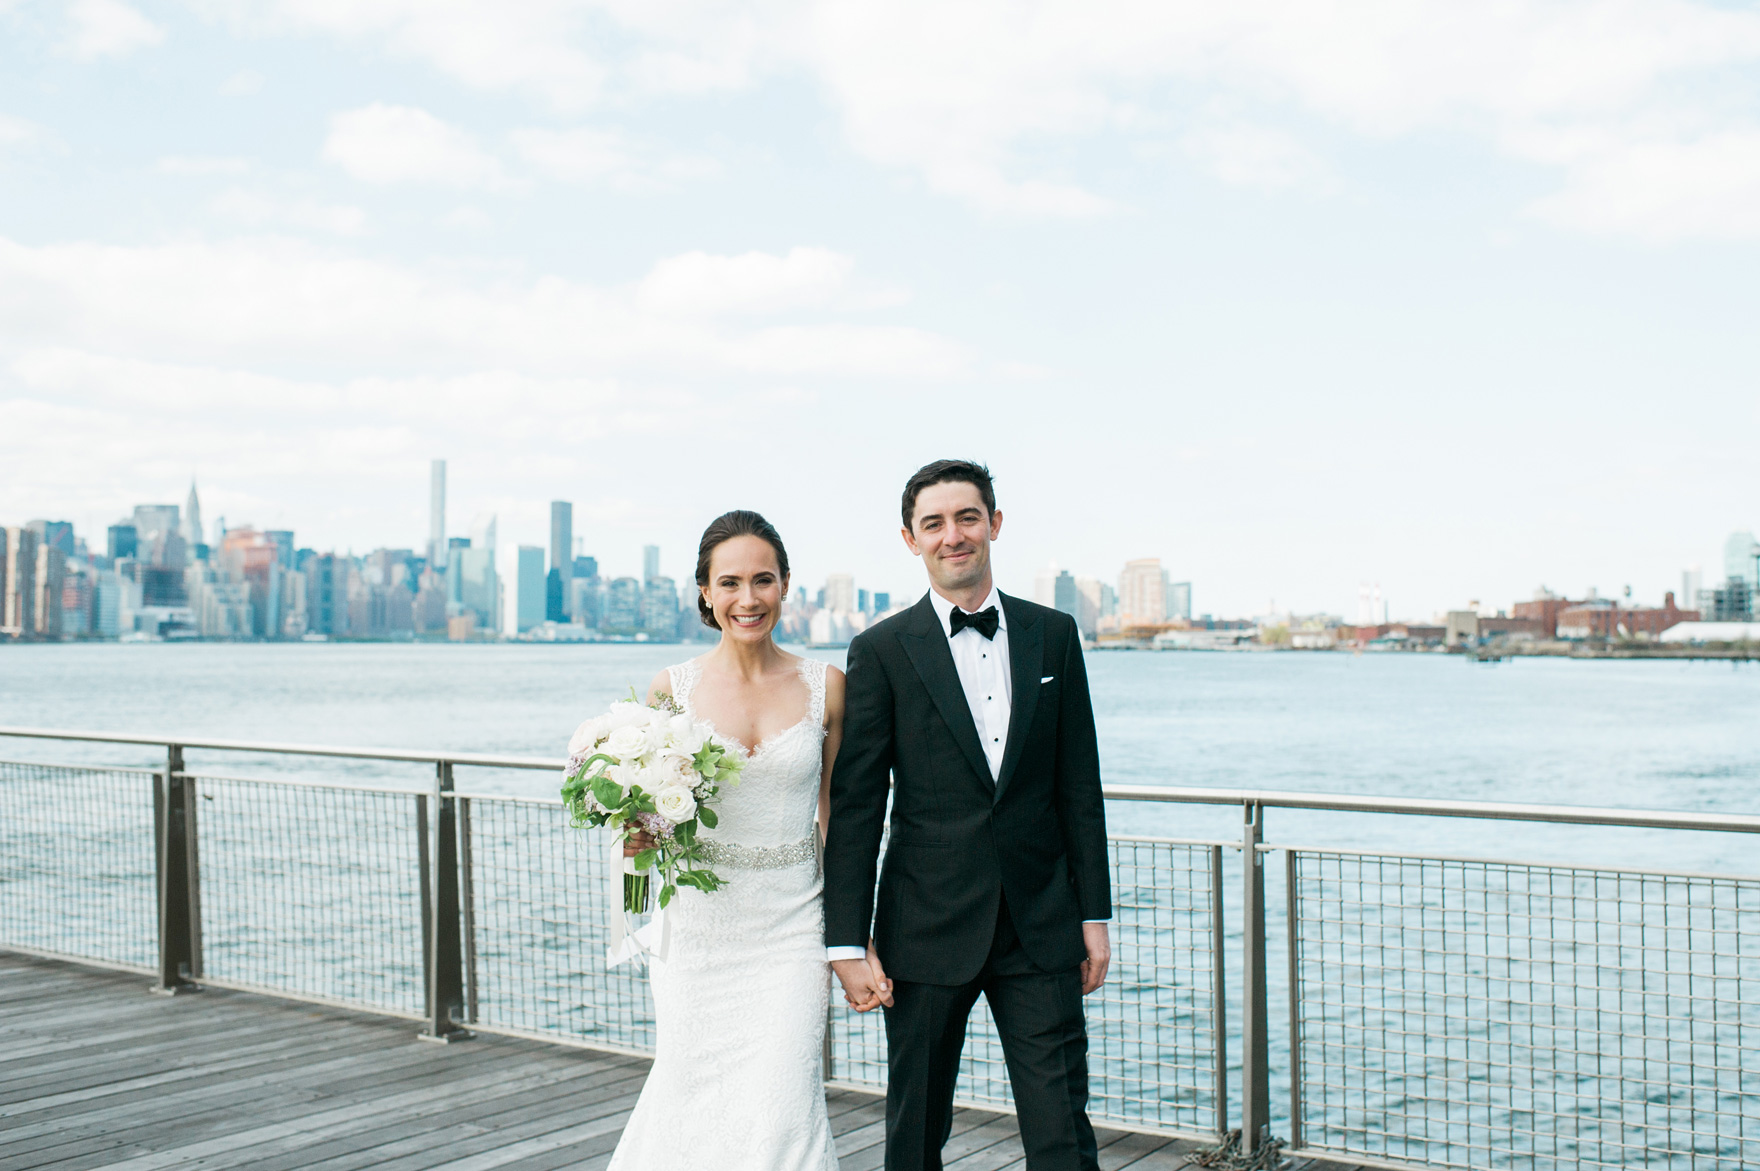 Williamsburg New York Fine Art Wedding by Christina Lilly Photography024